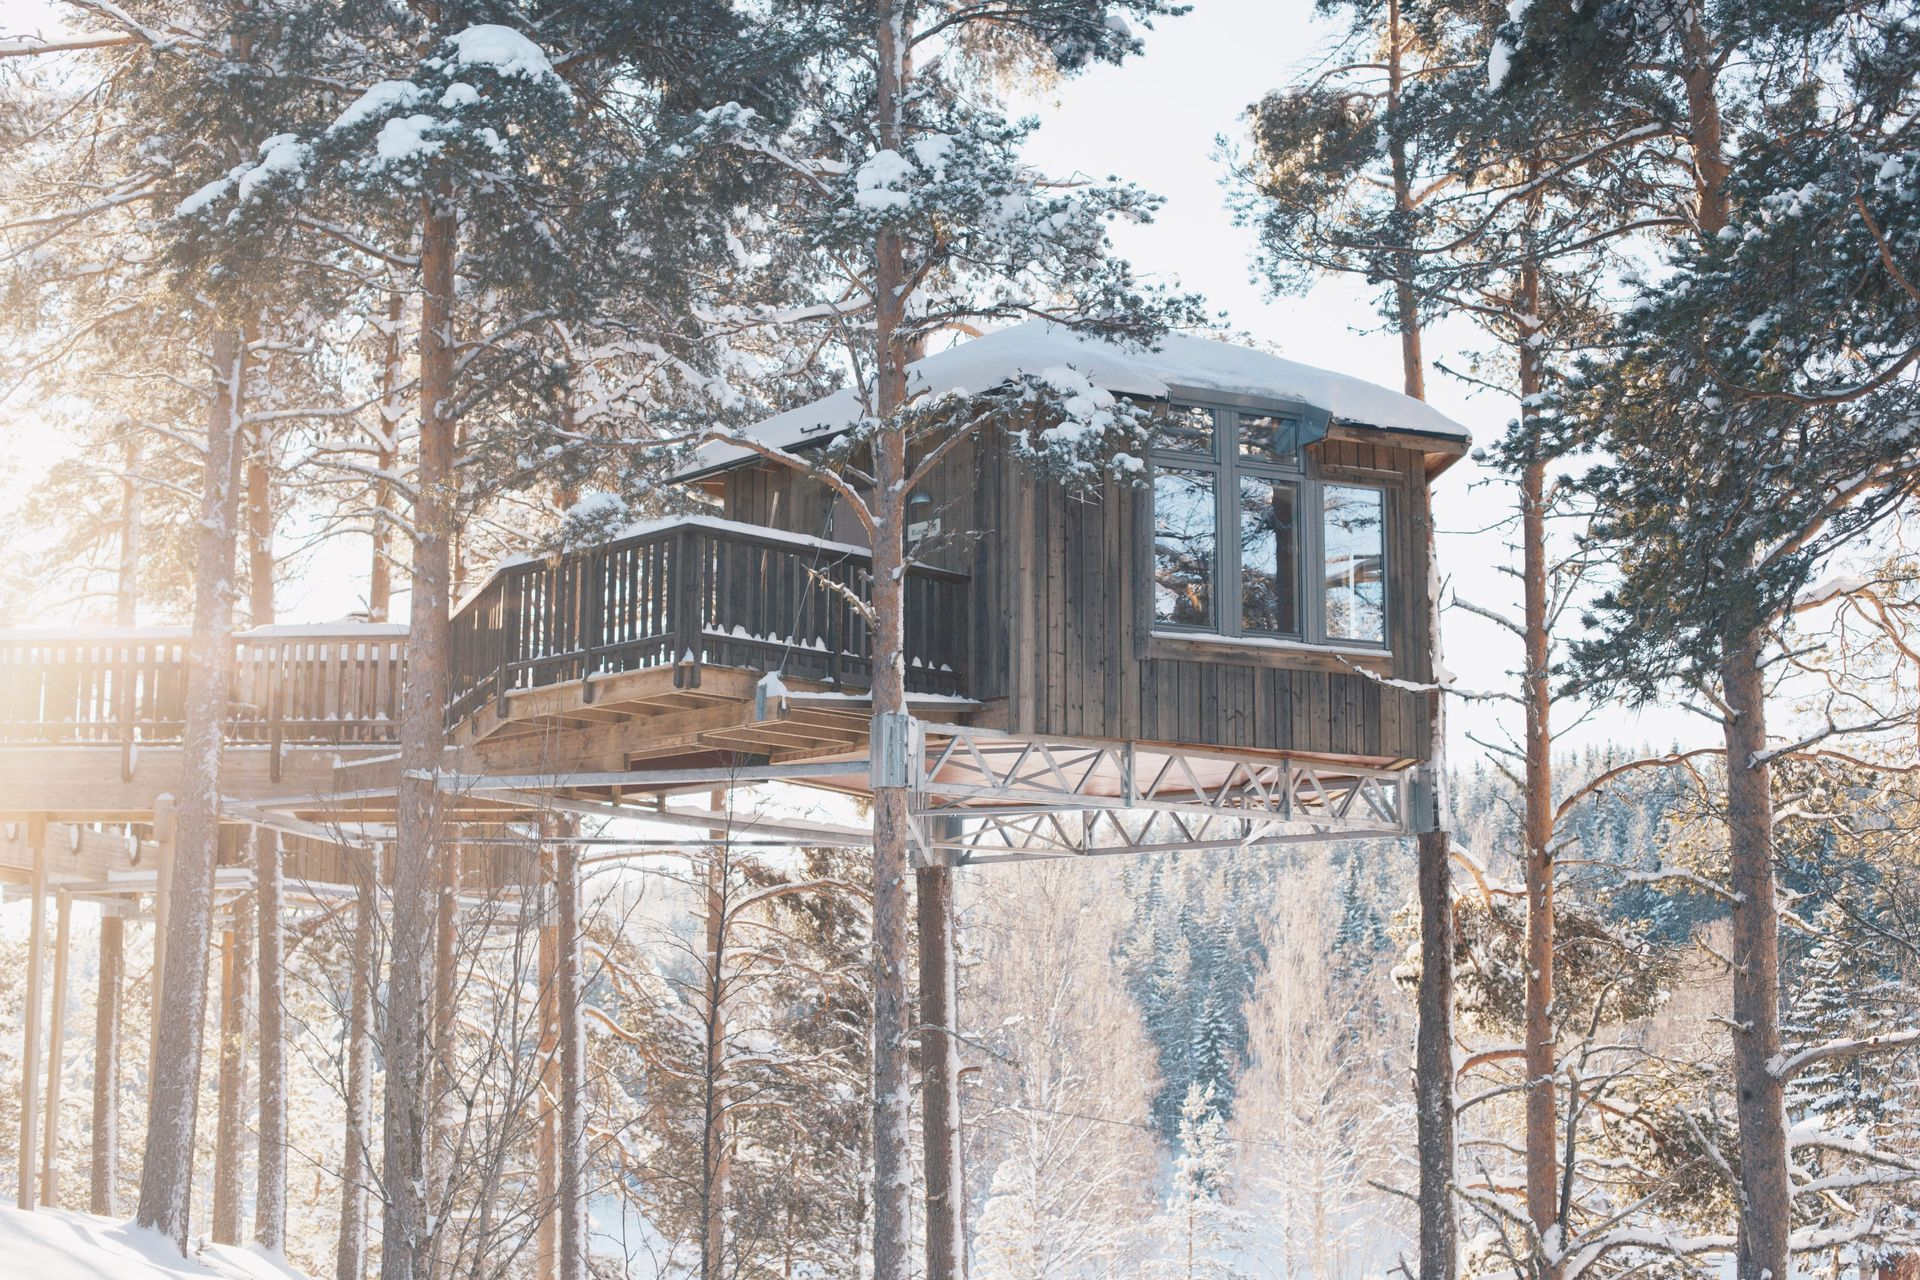 Wooden treehouse structure elevated in a snowy forrest.